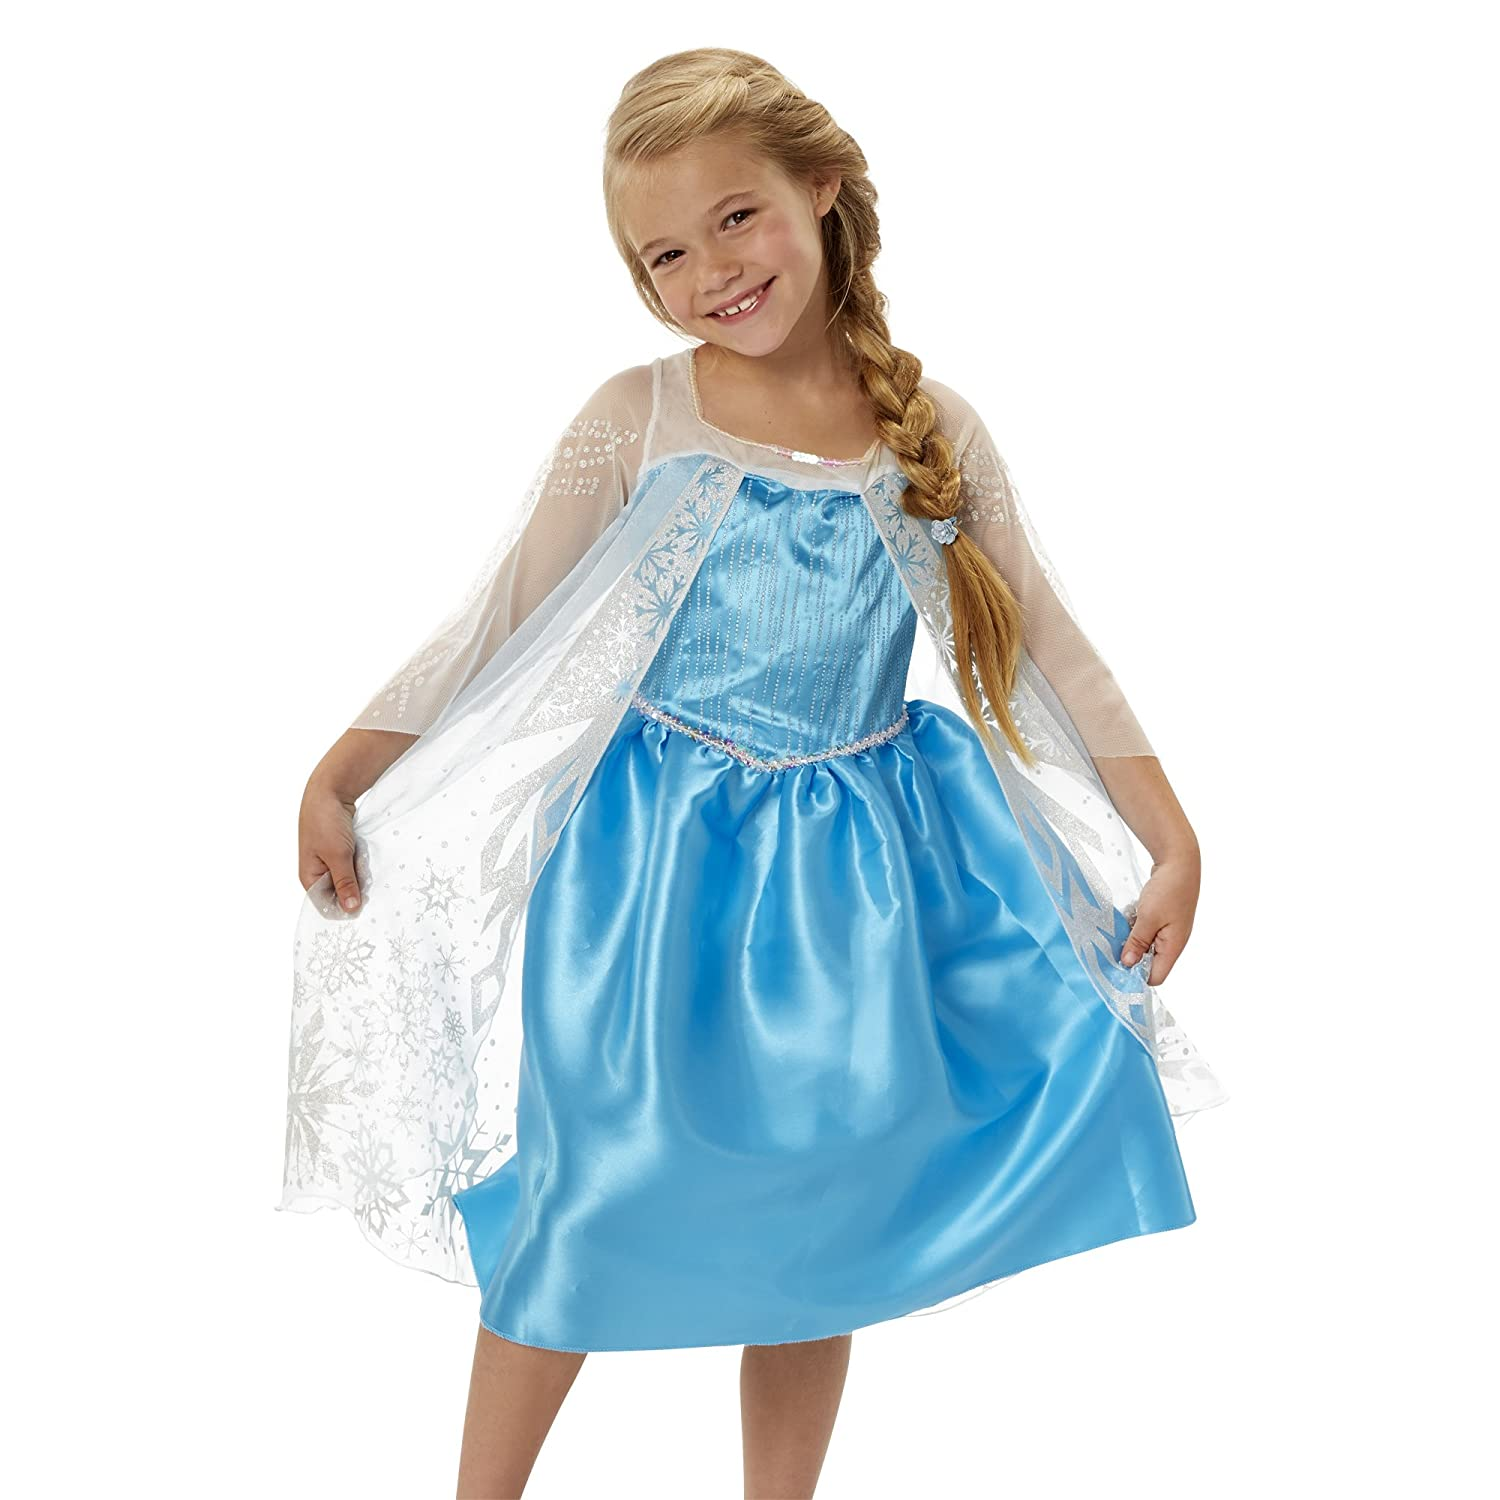 Amazon.com: Frozen Disney Frozen Elsa New Blue Dress: Toys & Games